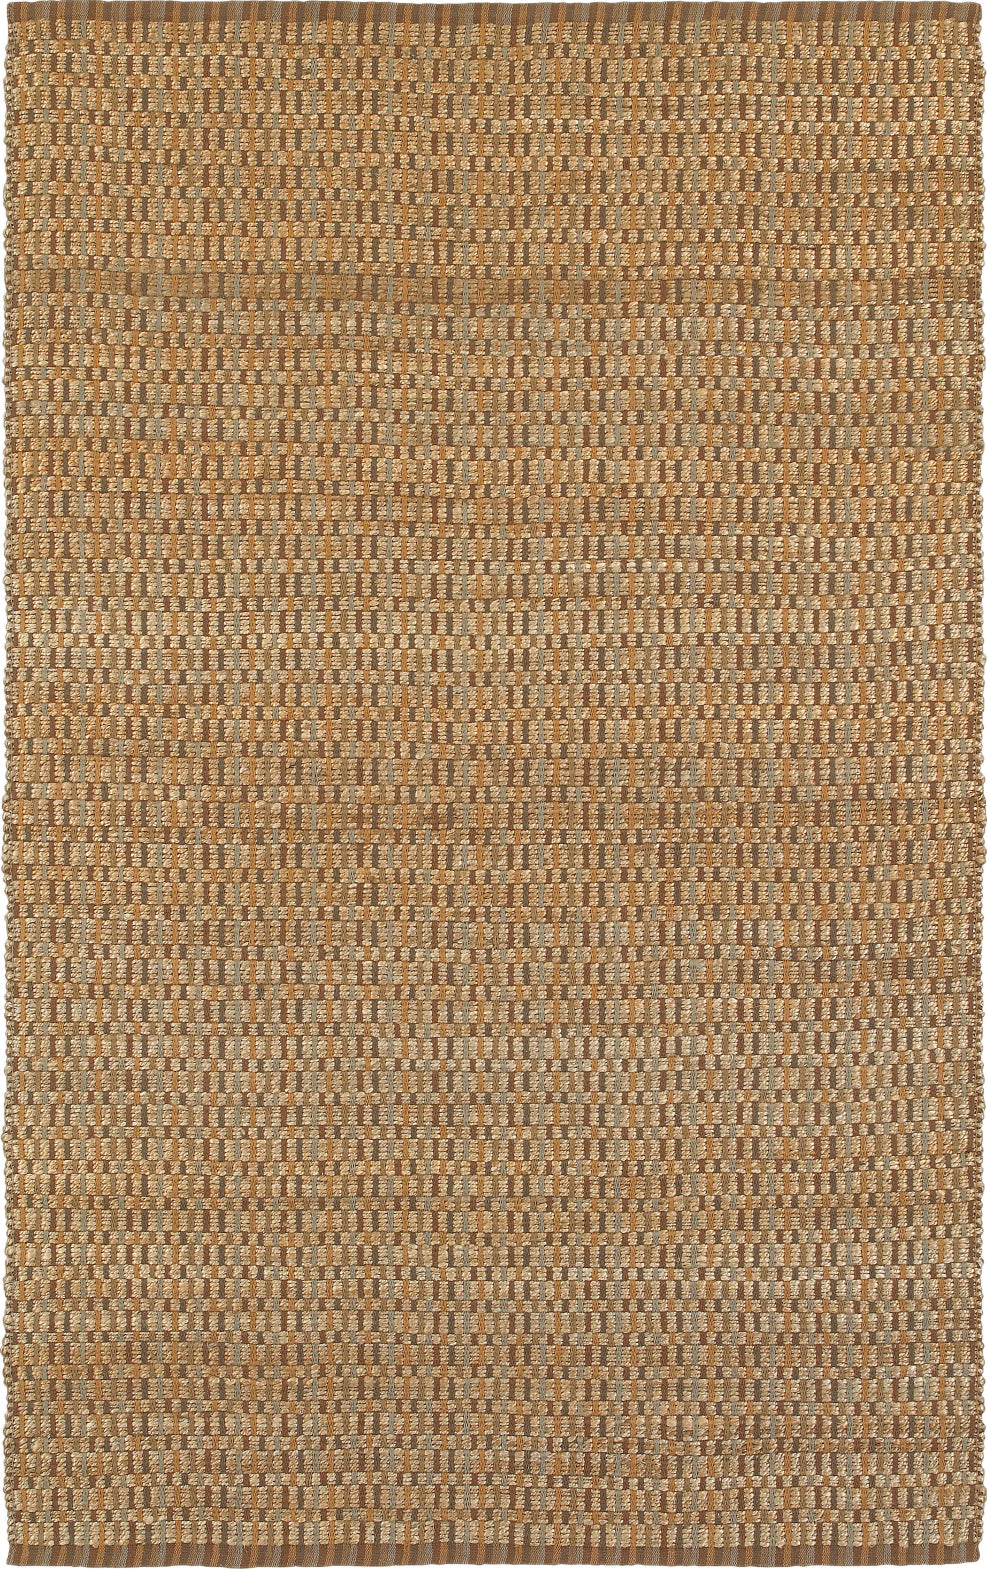 LR Resources Natural Fiber 3306 Hebrides Area Rug main image